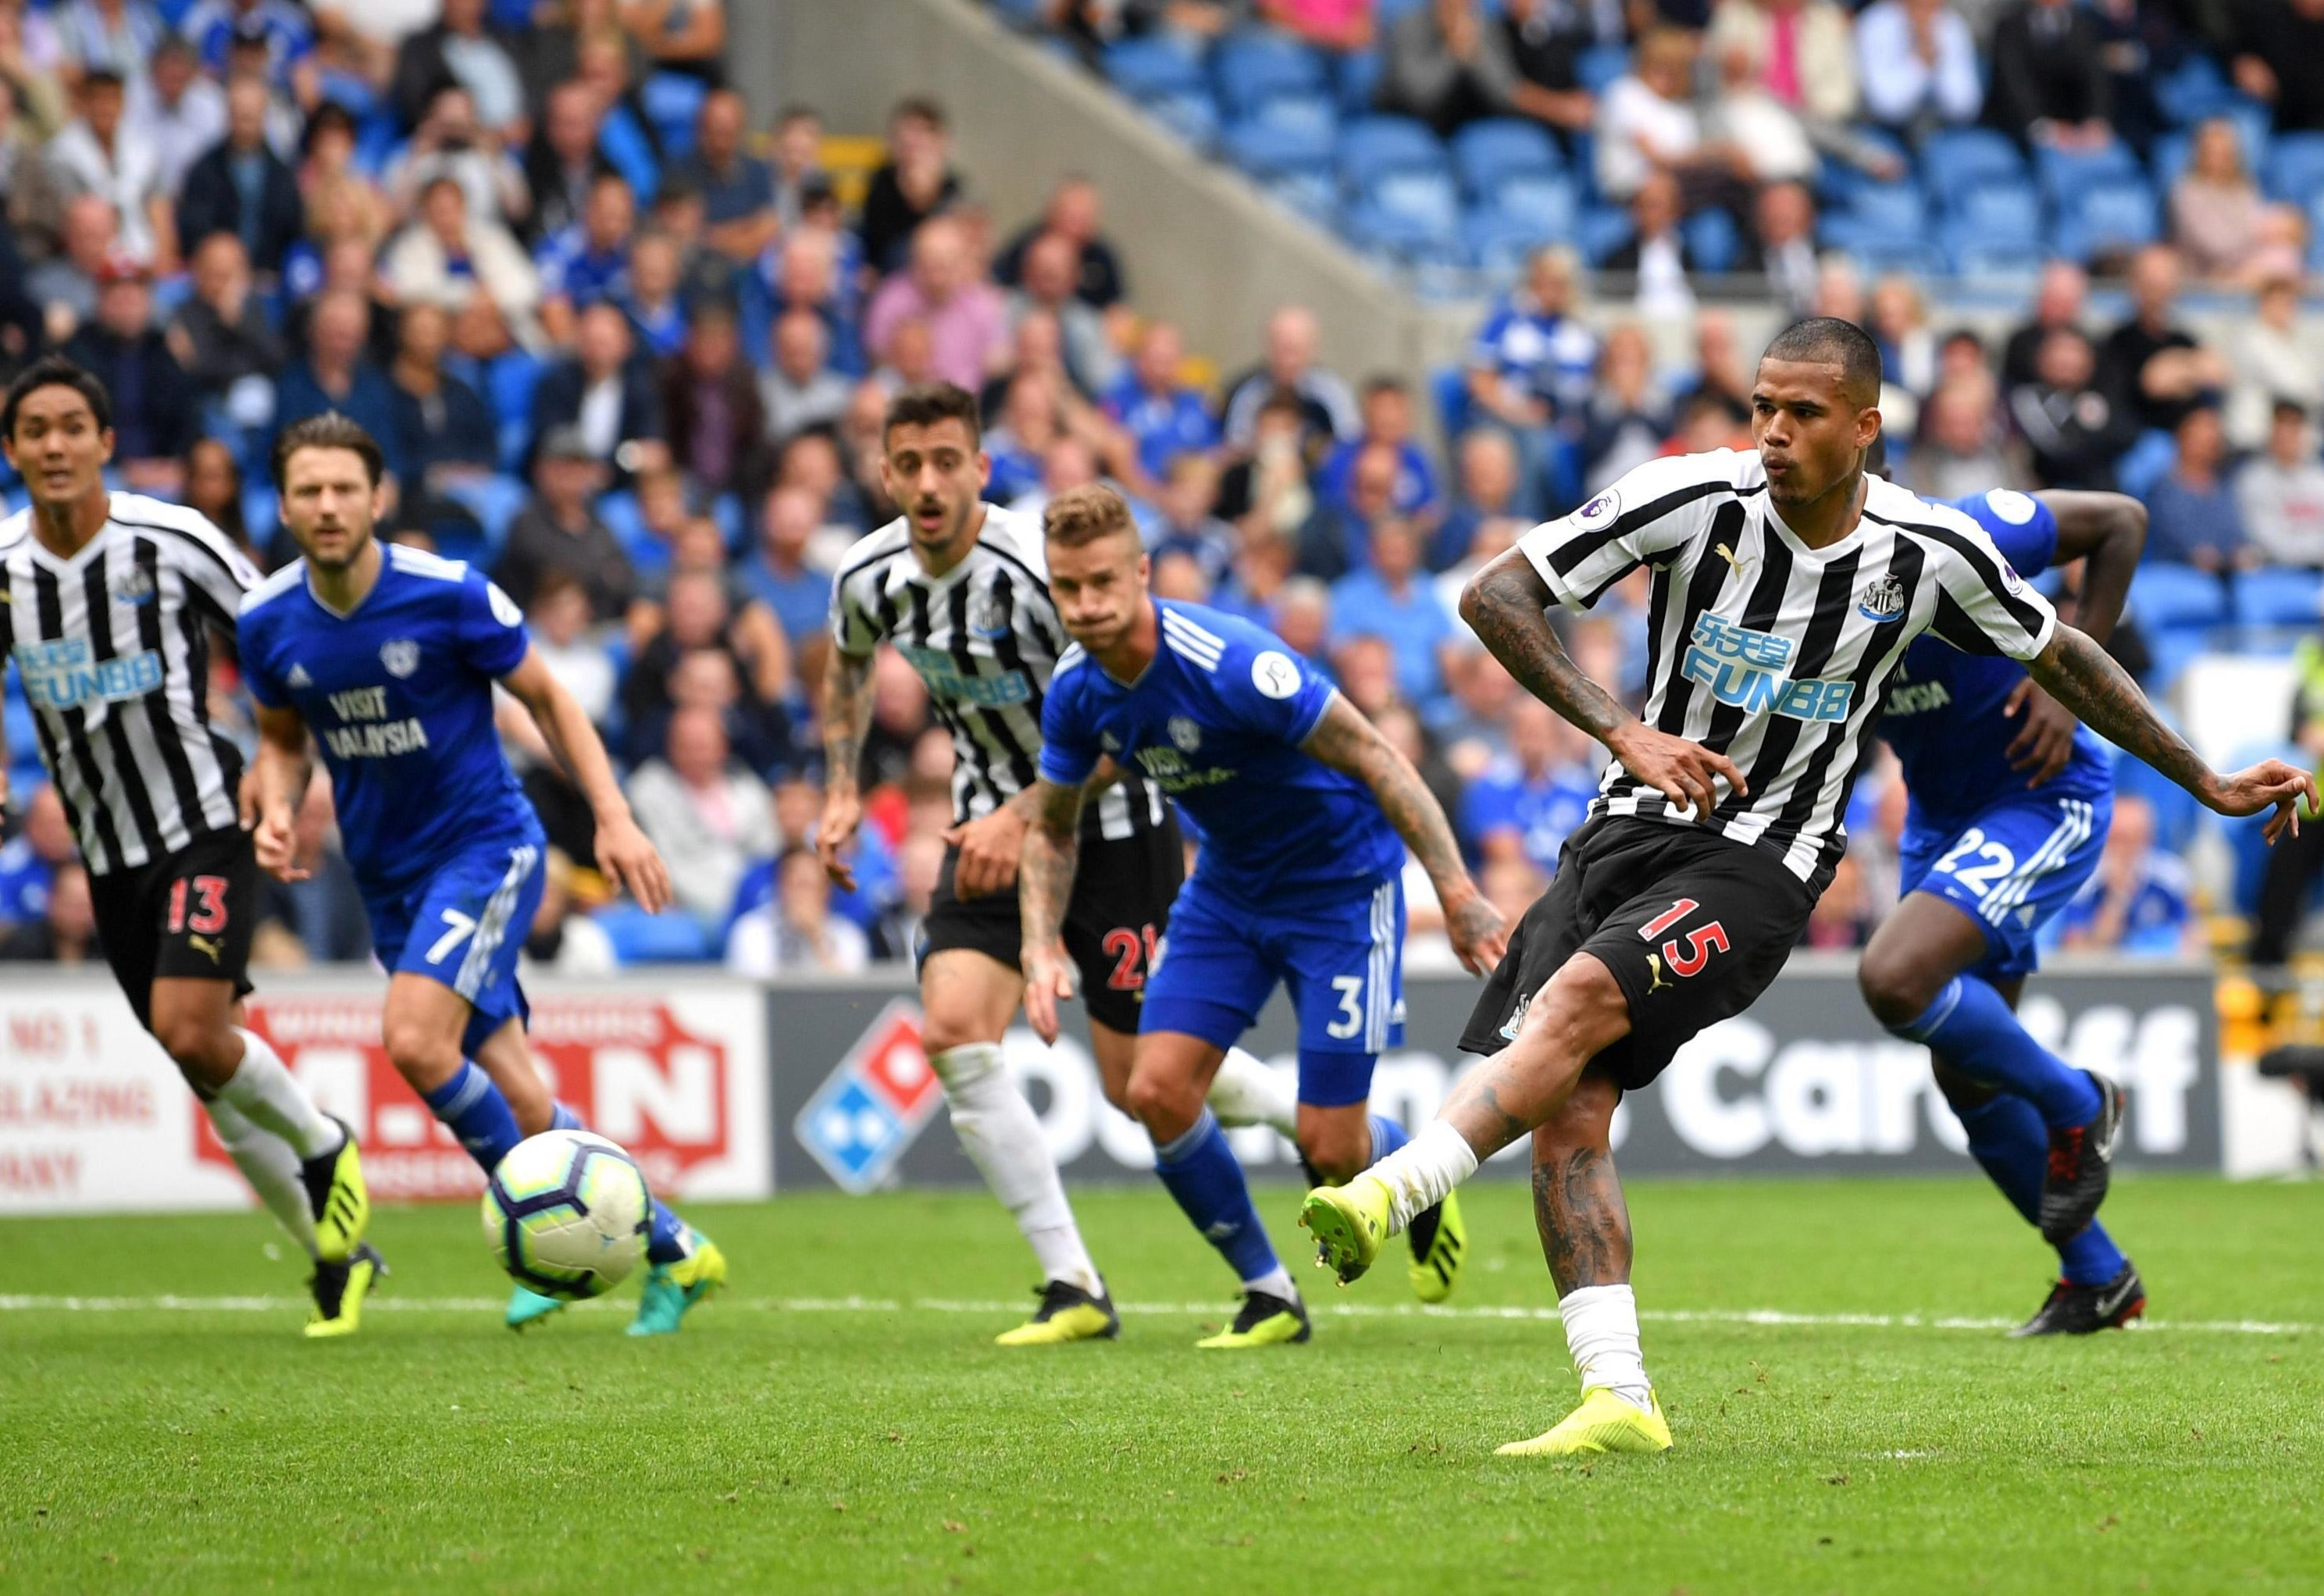 Kenedy fires his penalty towards the goal in the 94th minute